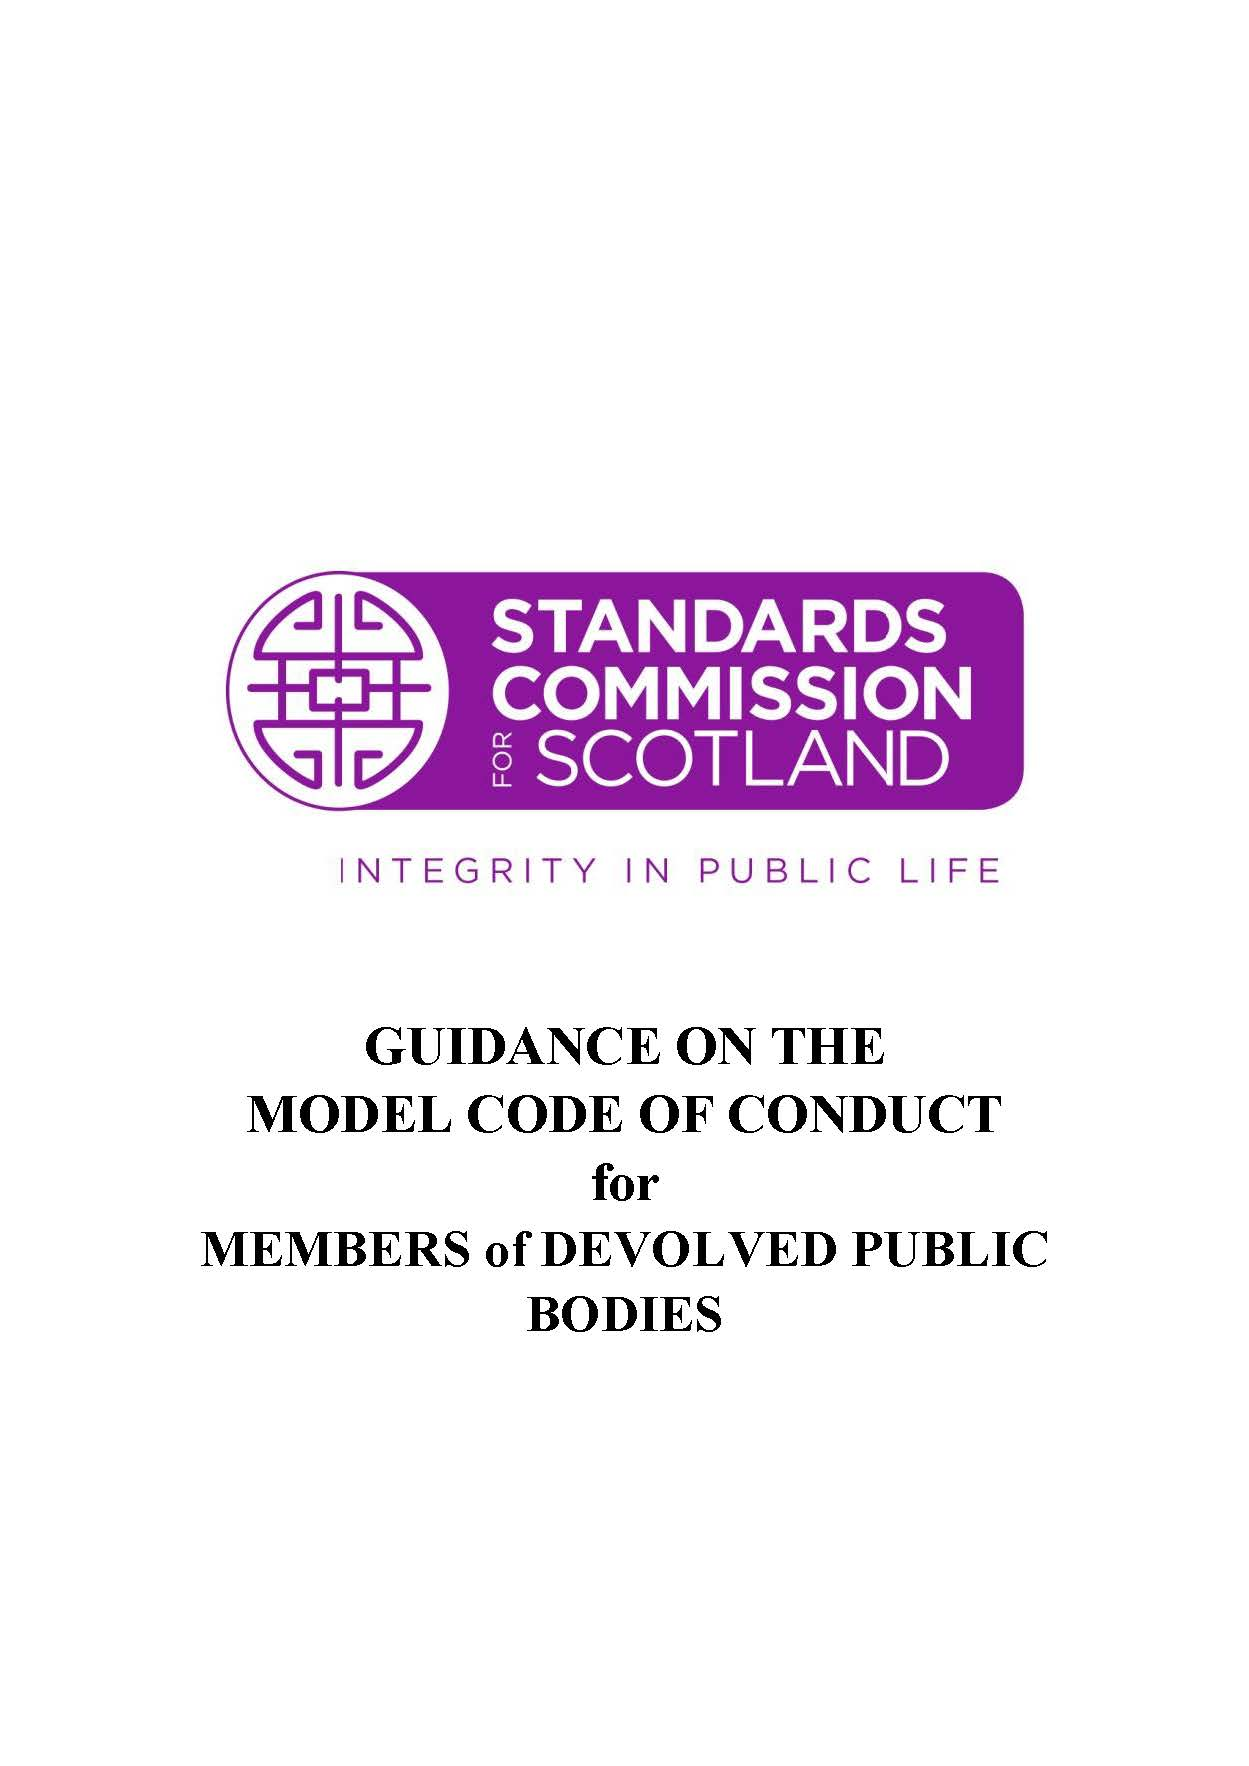 Guidance on the Model Code of Conduct for Members of Devolved Public Bodies